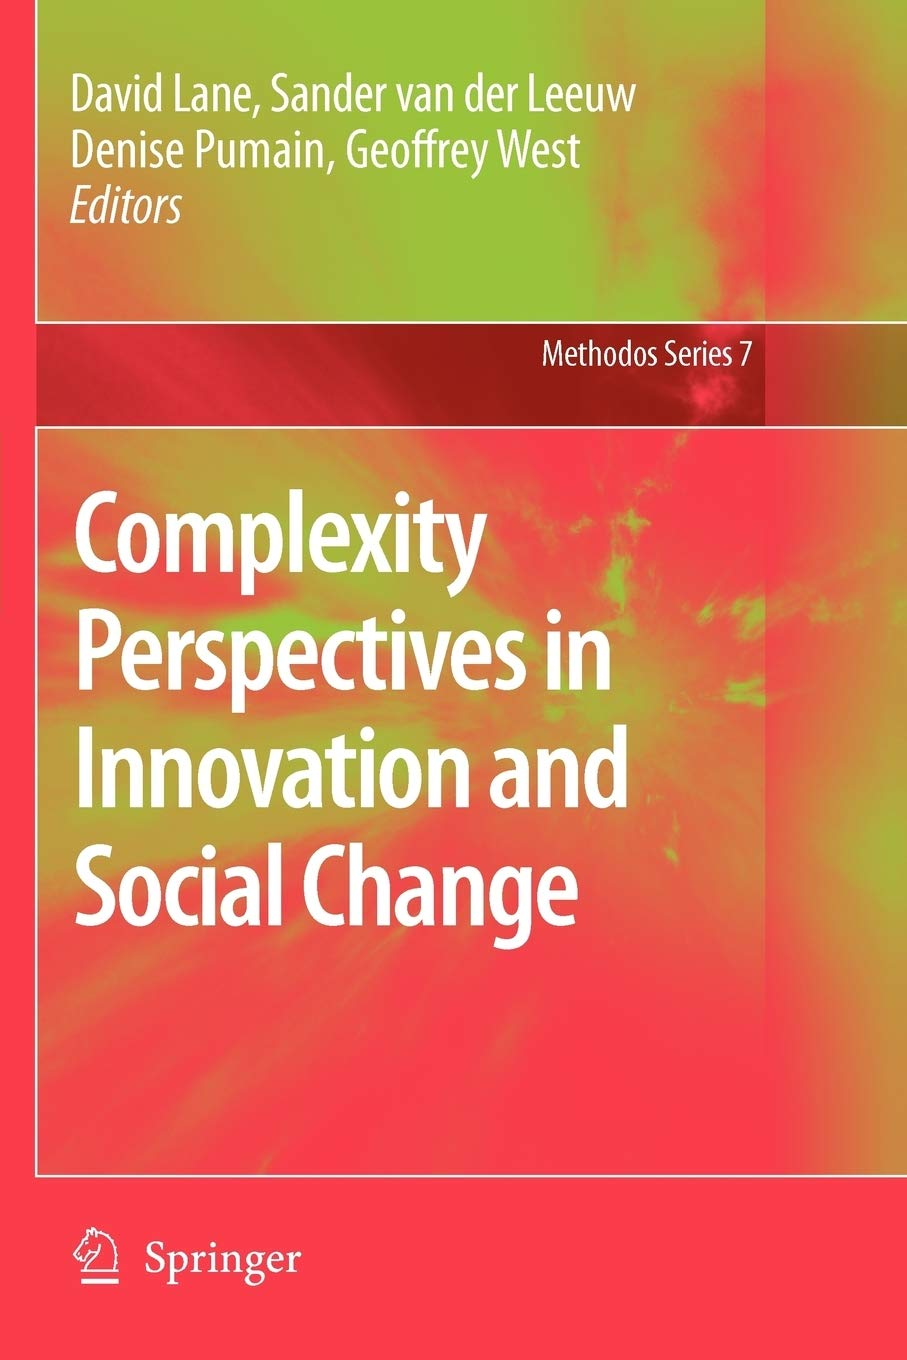 Image OfComplexity Perspectives In Innovation And Social Change